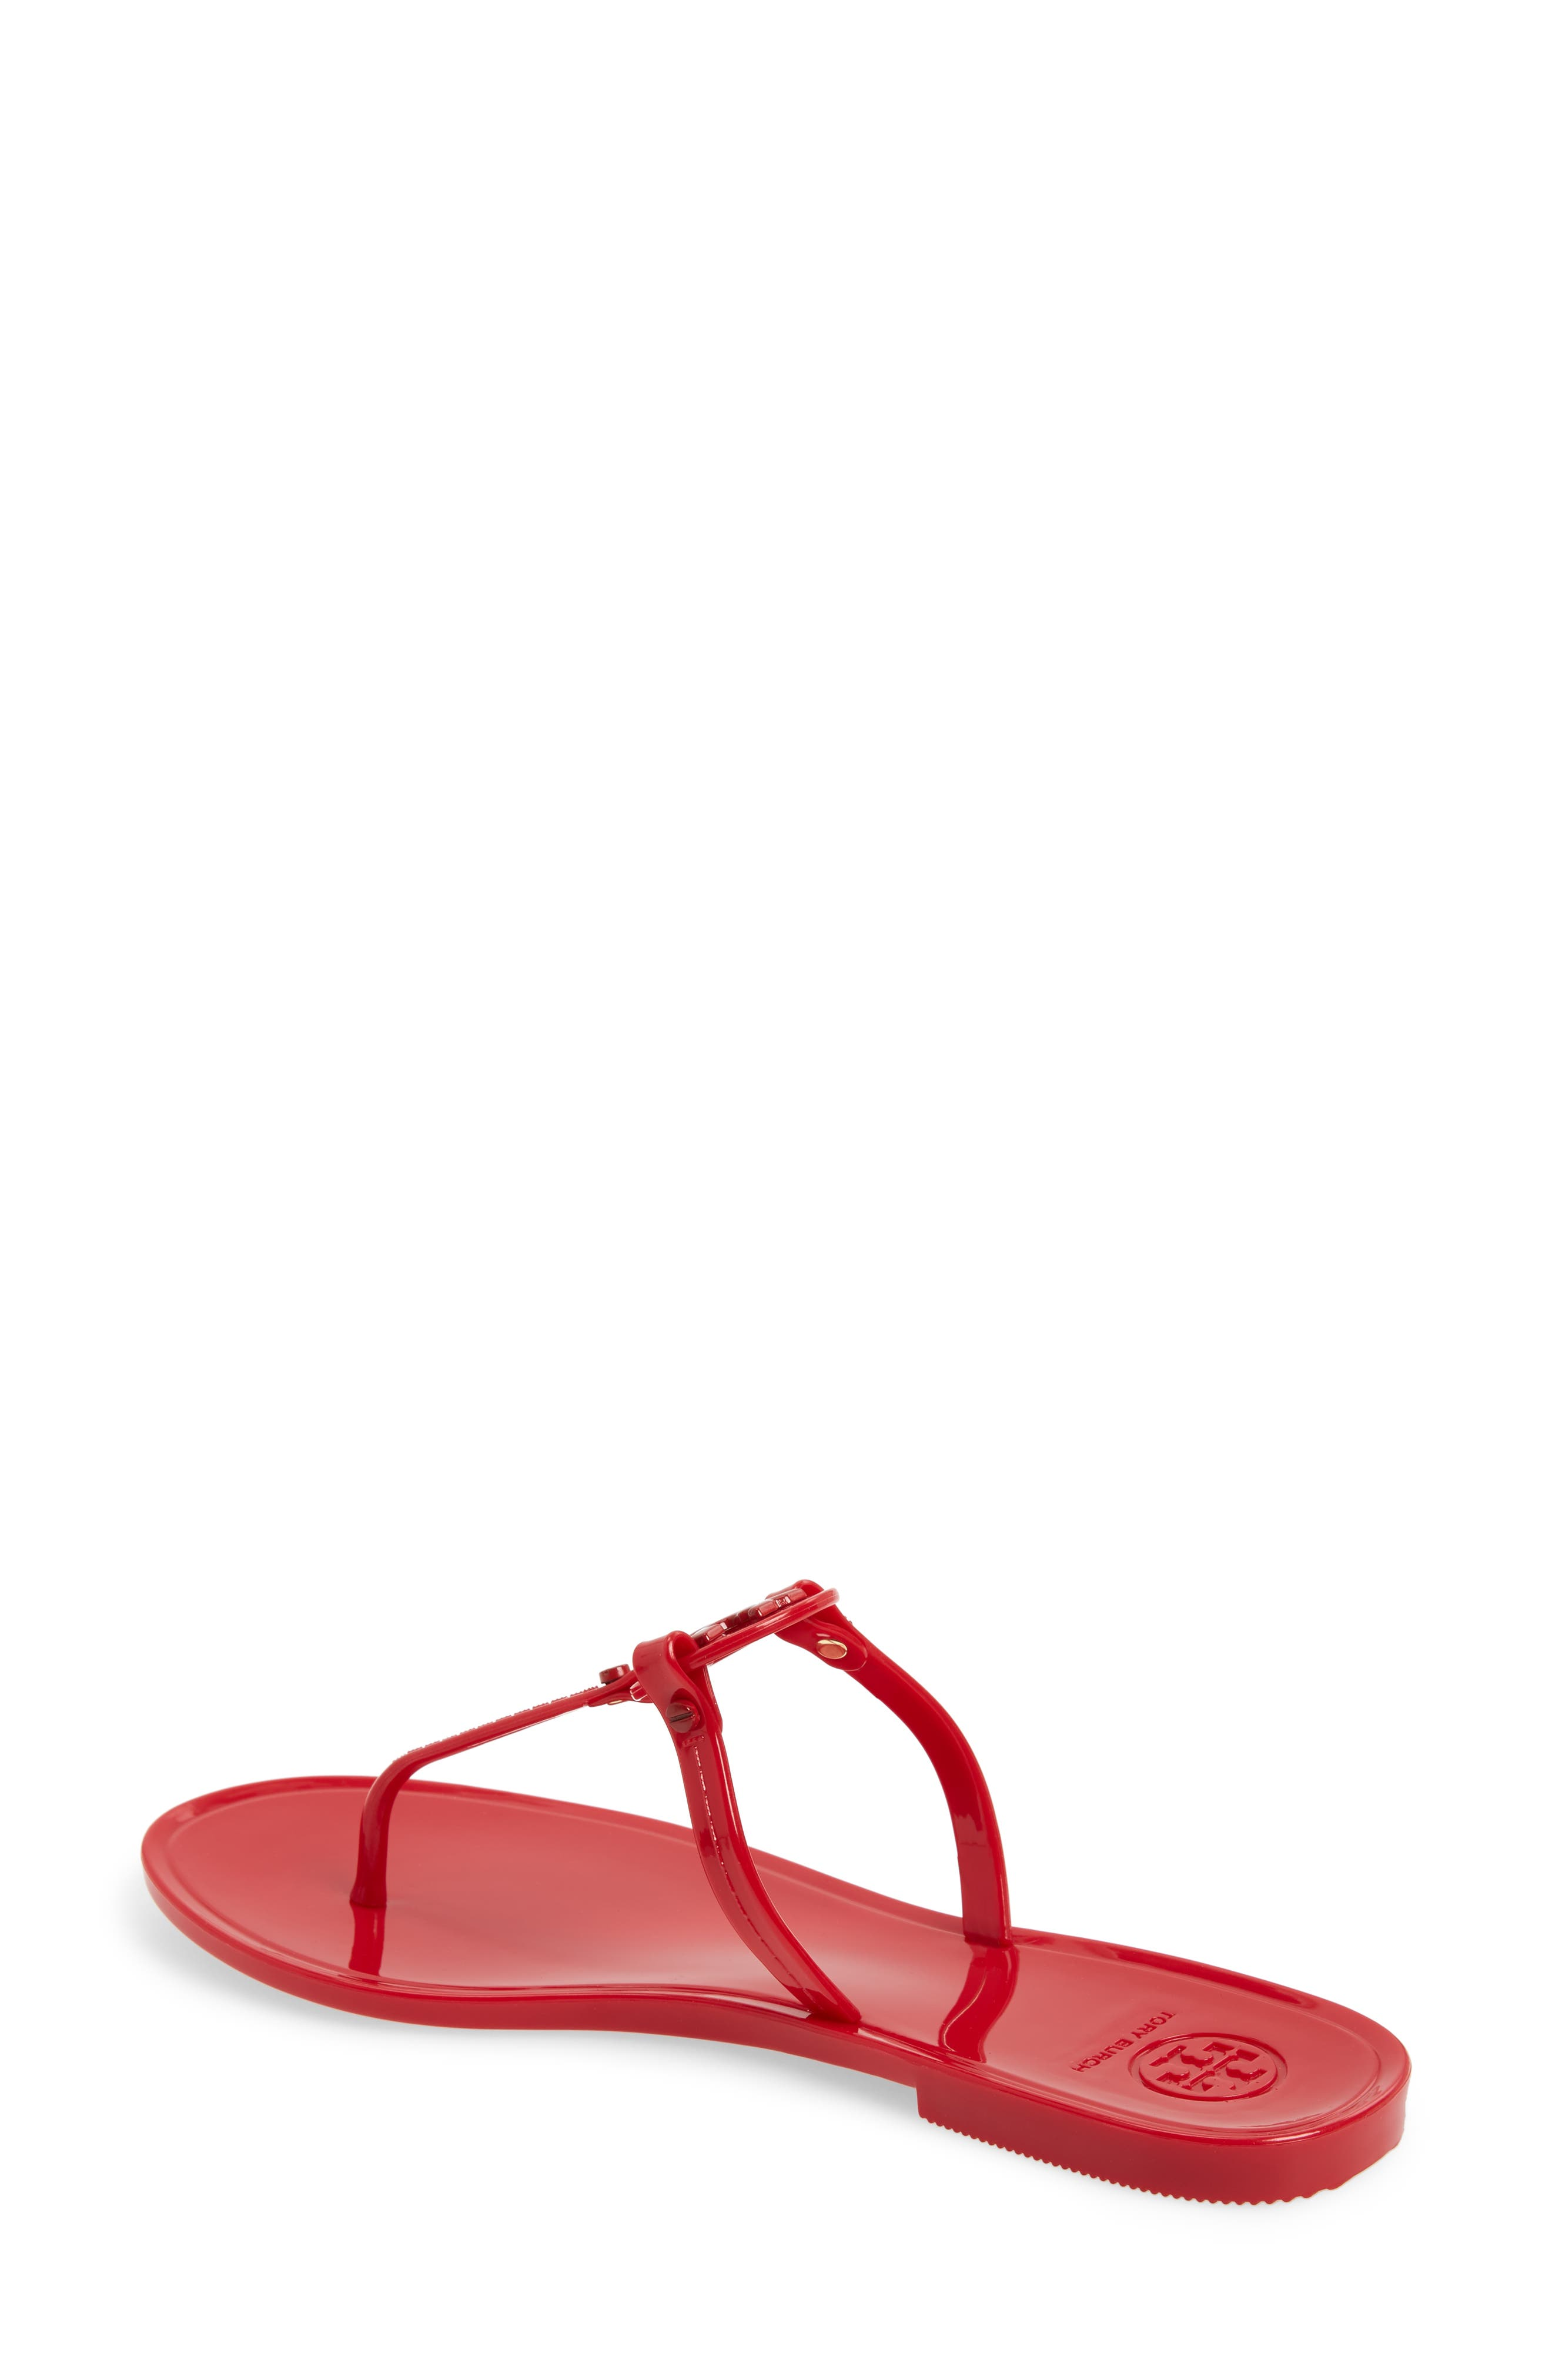 TORY BURCH,                             'Mini Miller' Flat Sandal,                             Alternate thumbnail 2, color,                             RED